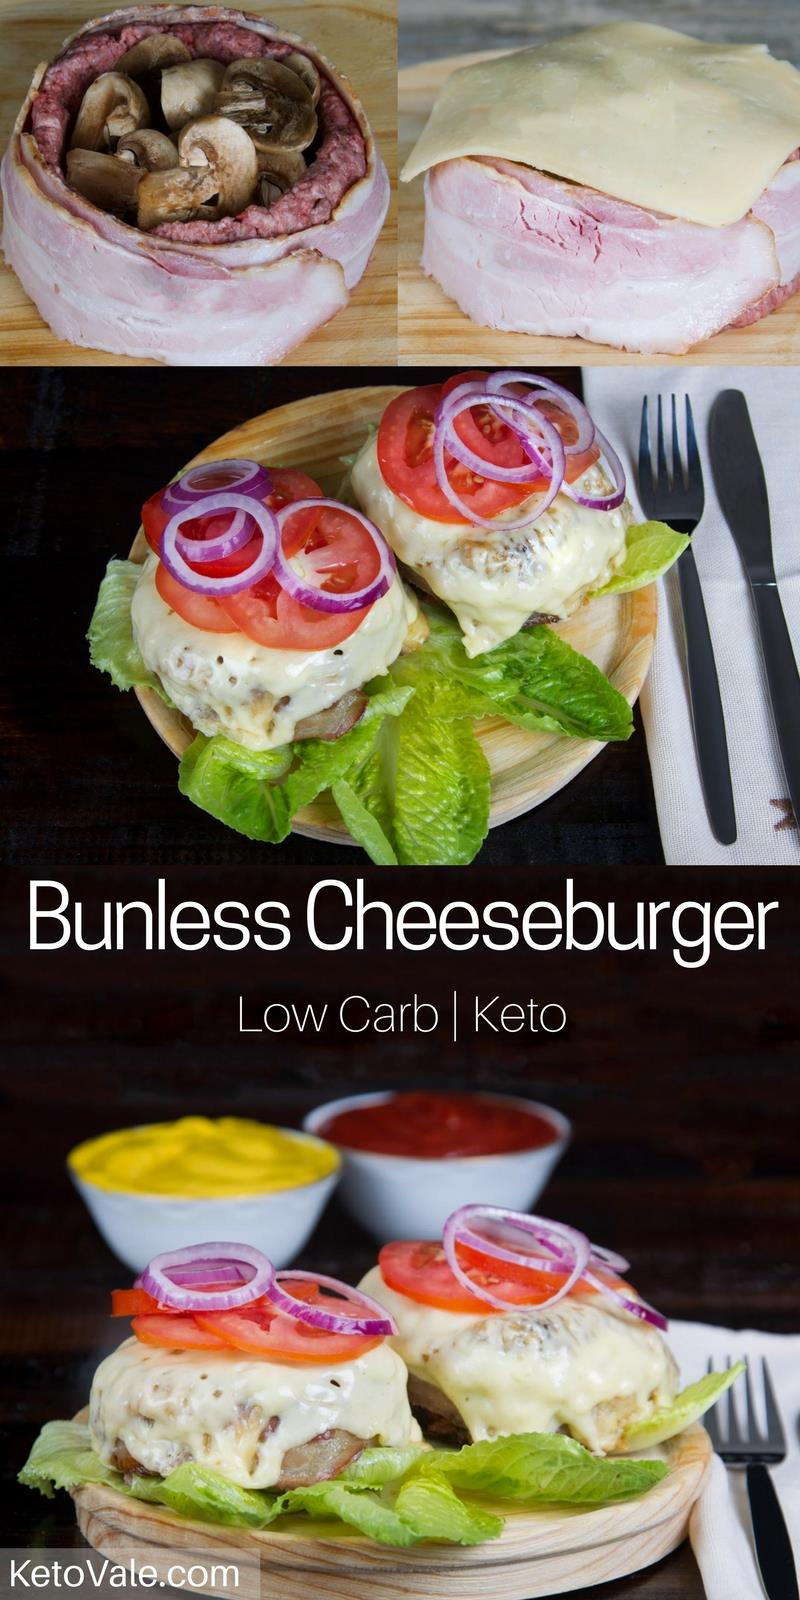 Bunless Cheeseburger